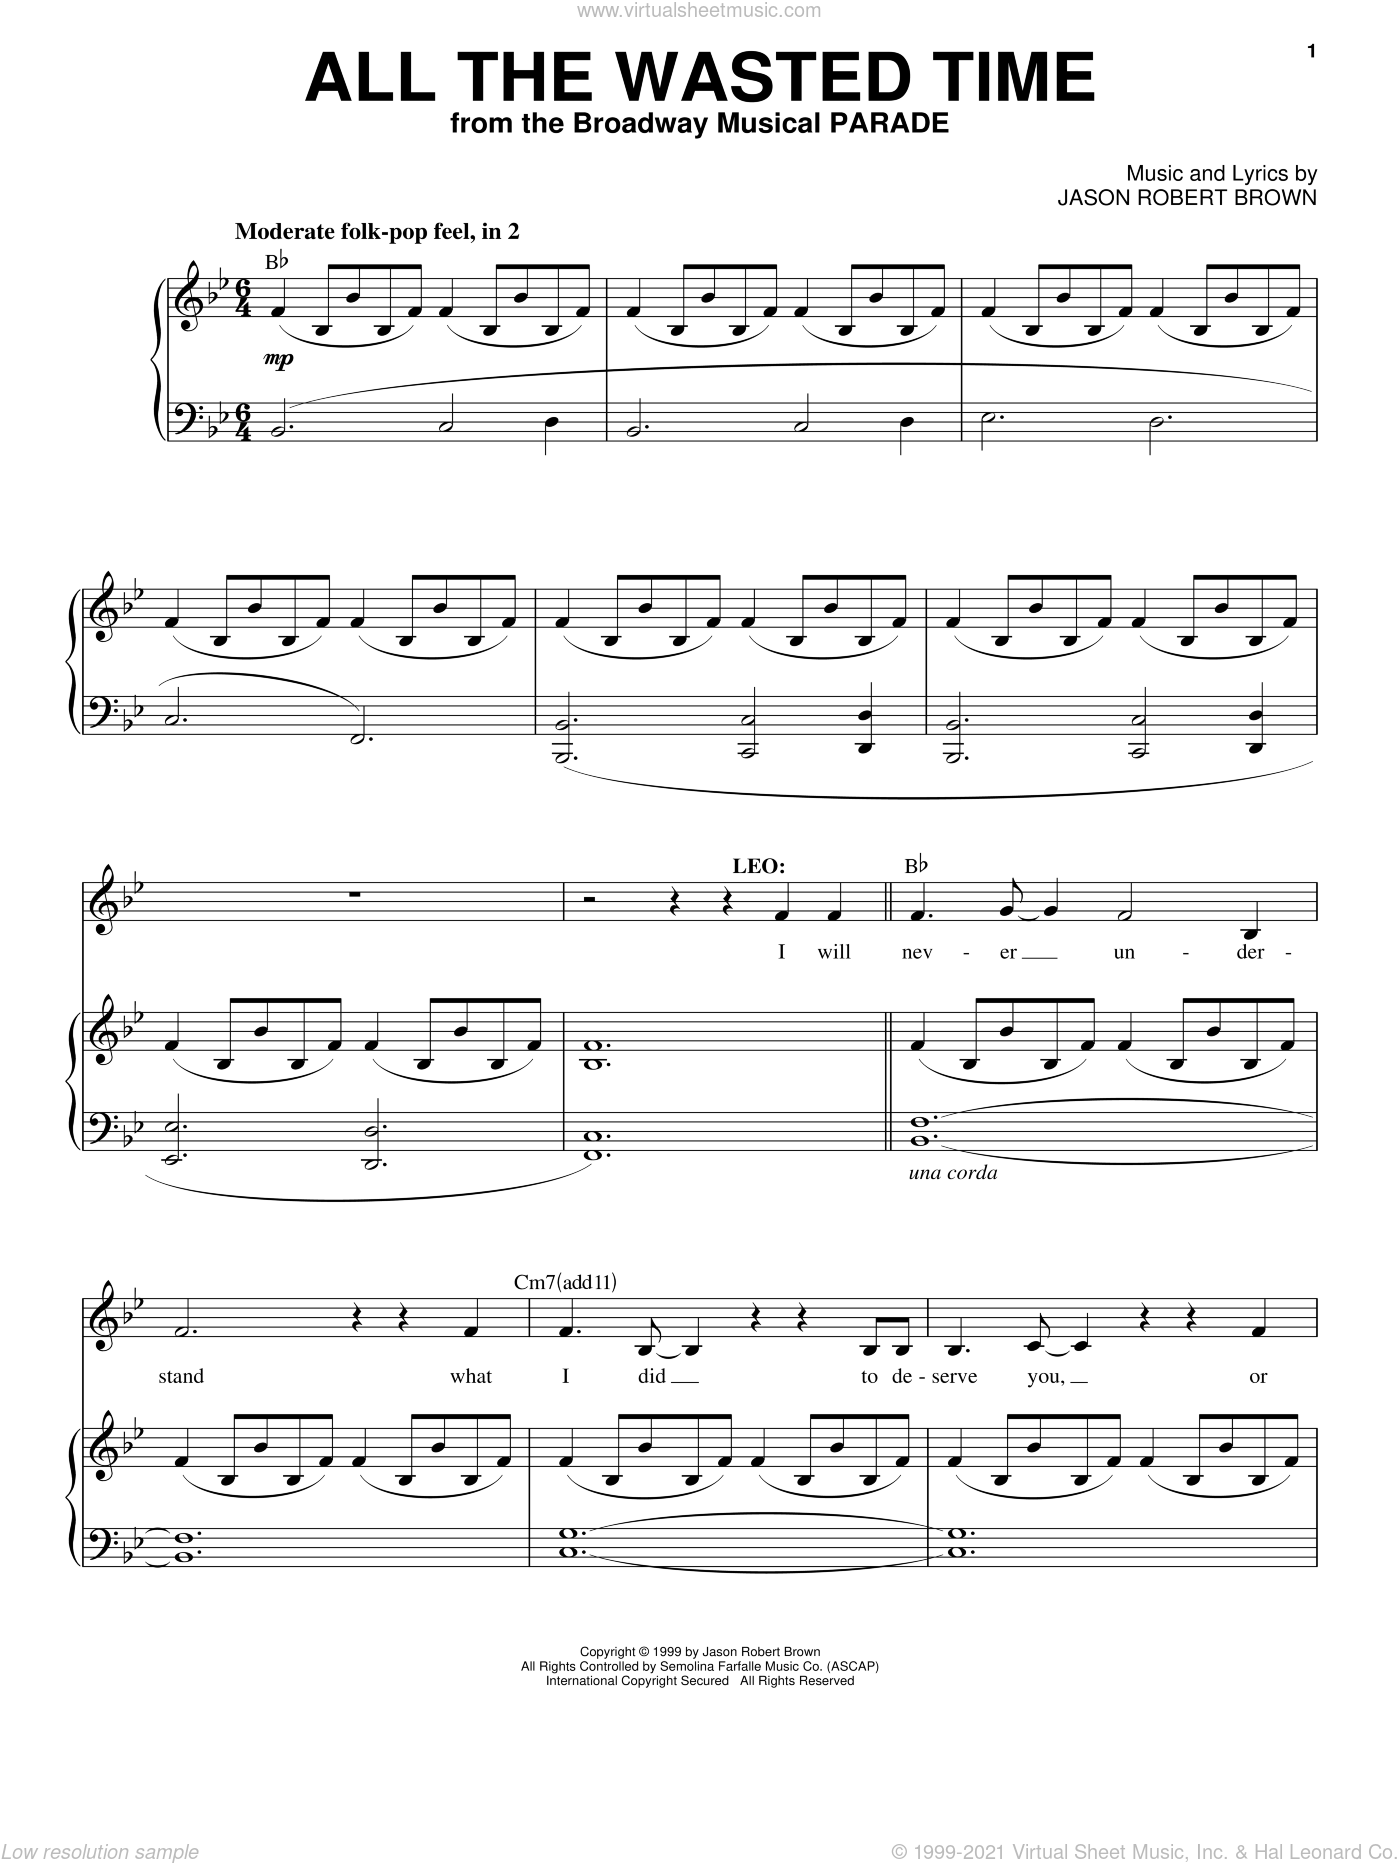 All The Wasted Time sheet music for voice and piano by Jason Robert Brown and Parade (Musical), intermediate skill level